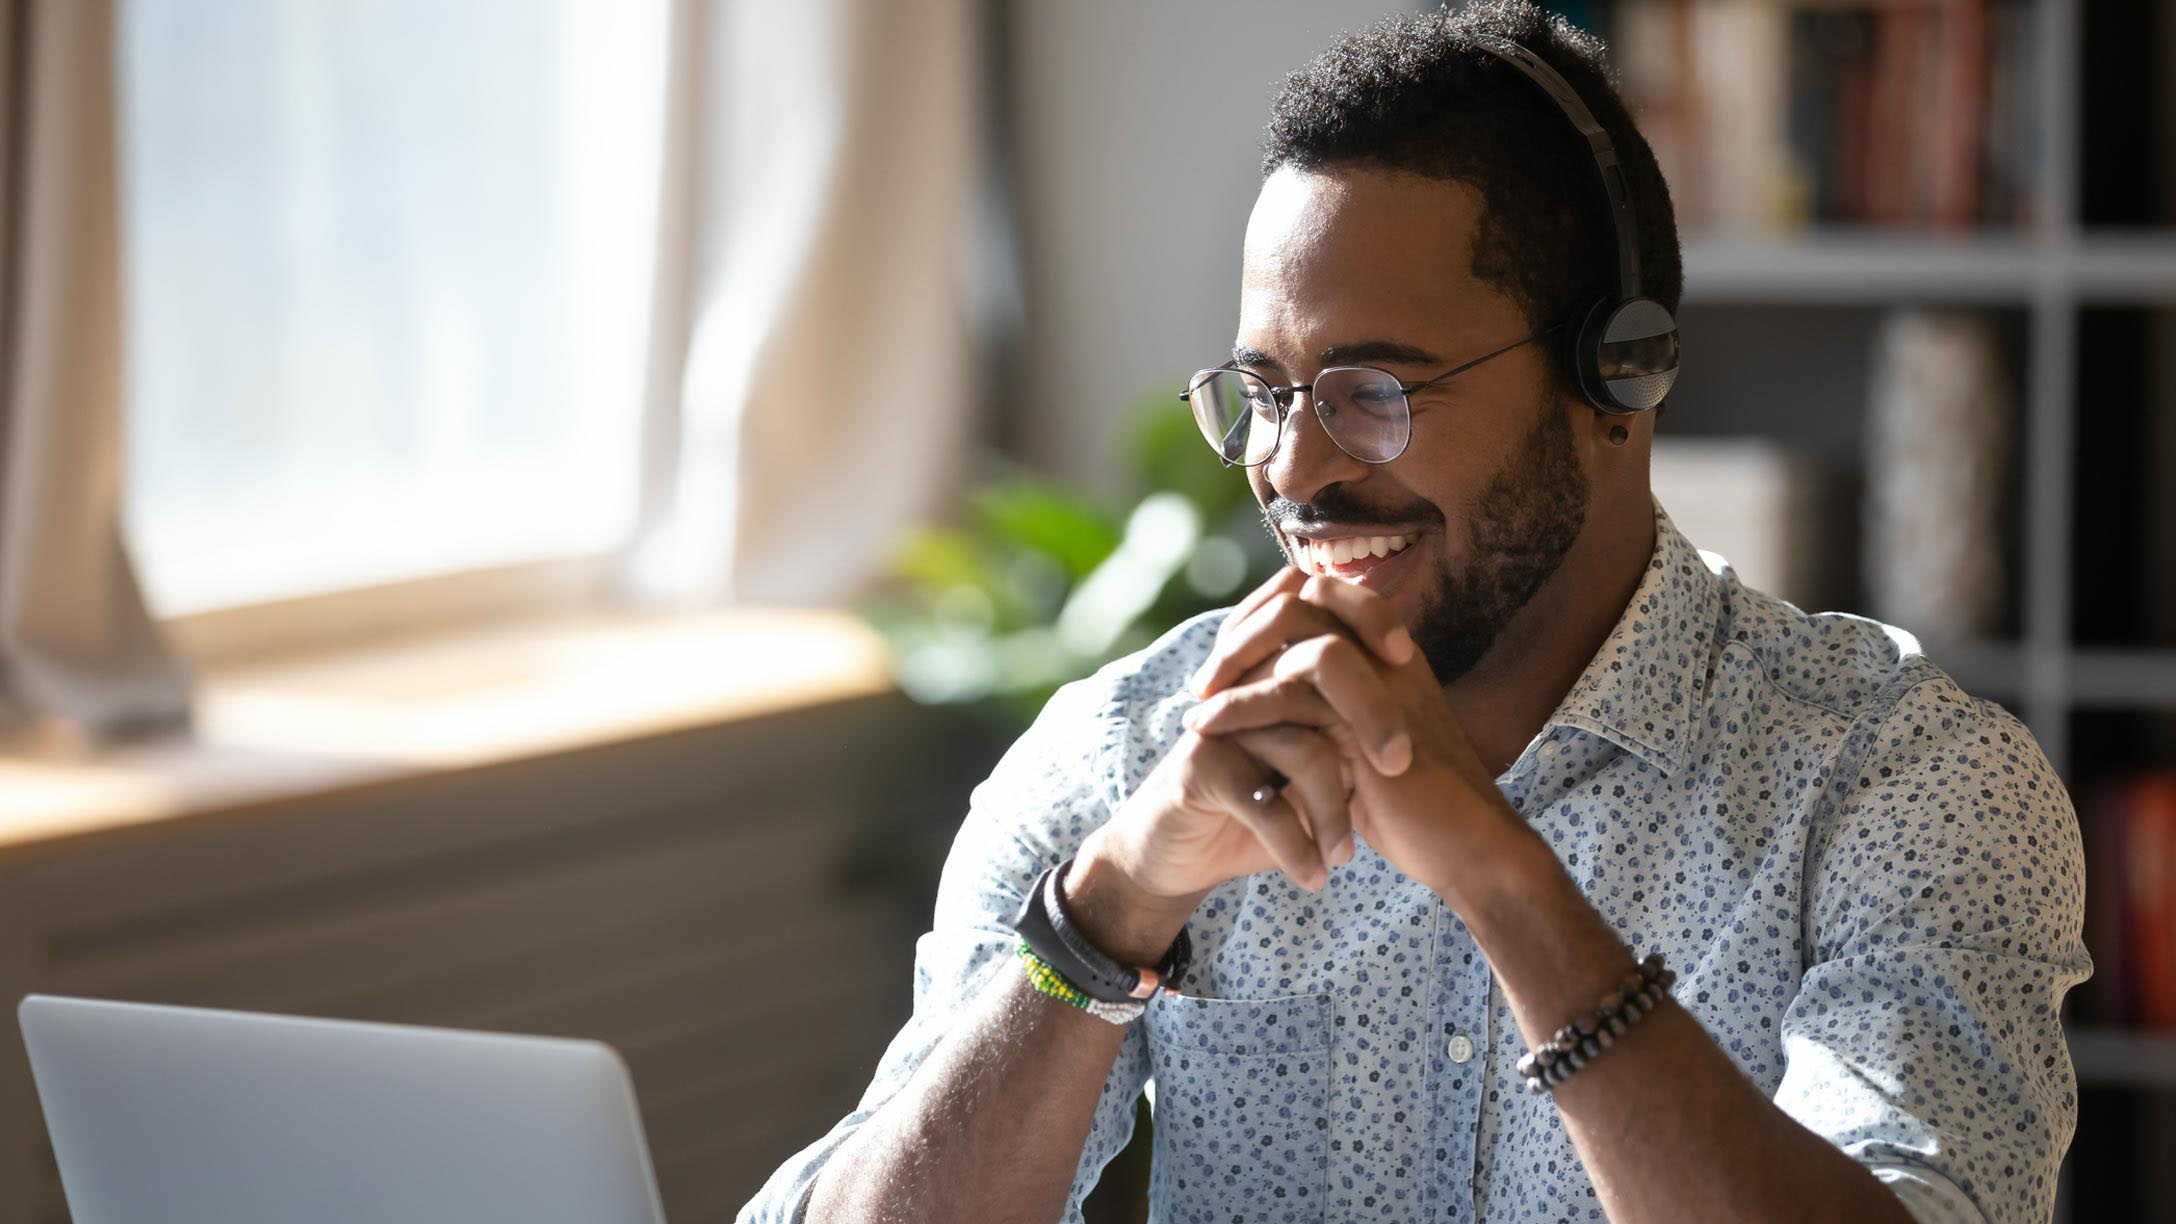 Man smiling in front of a laptop working remotely